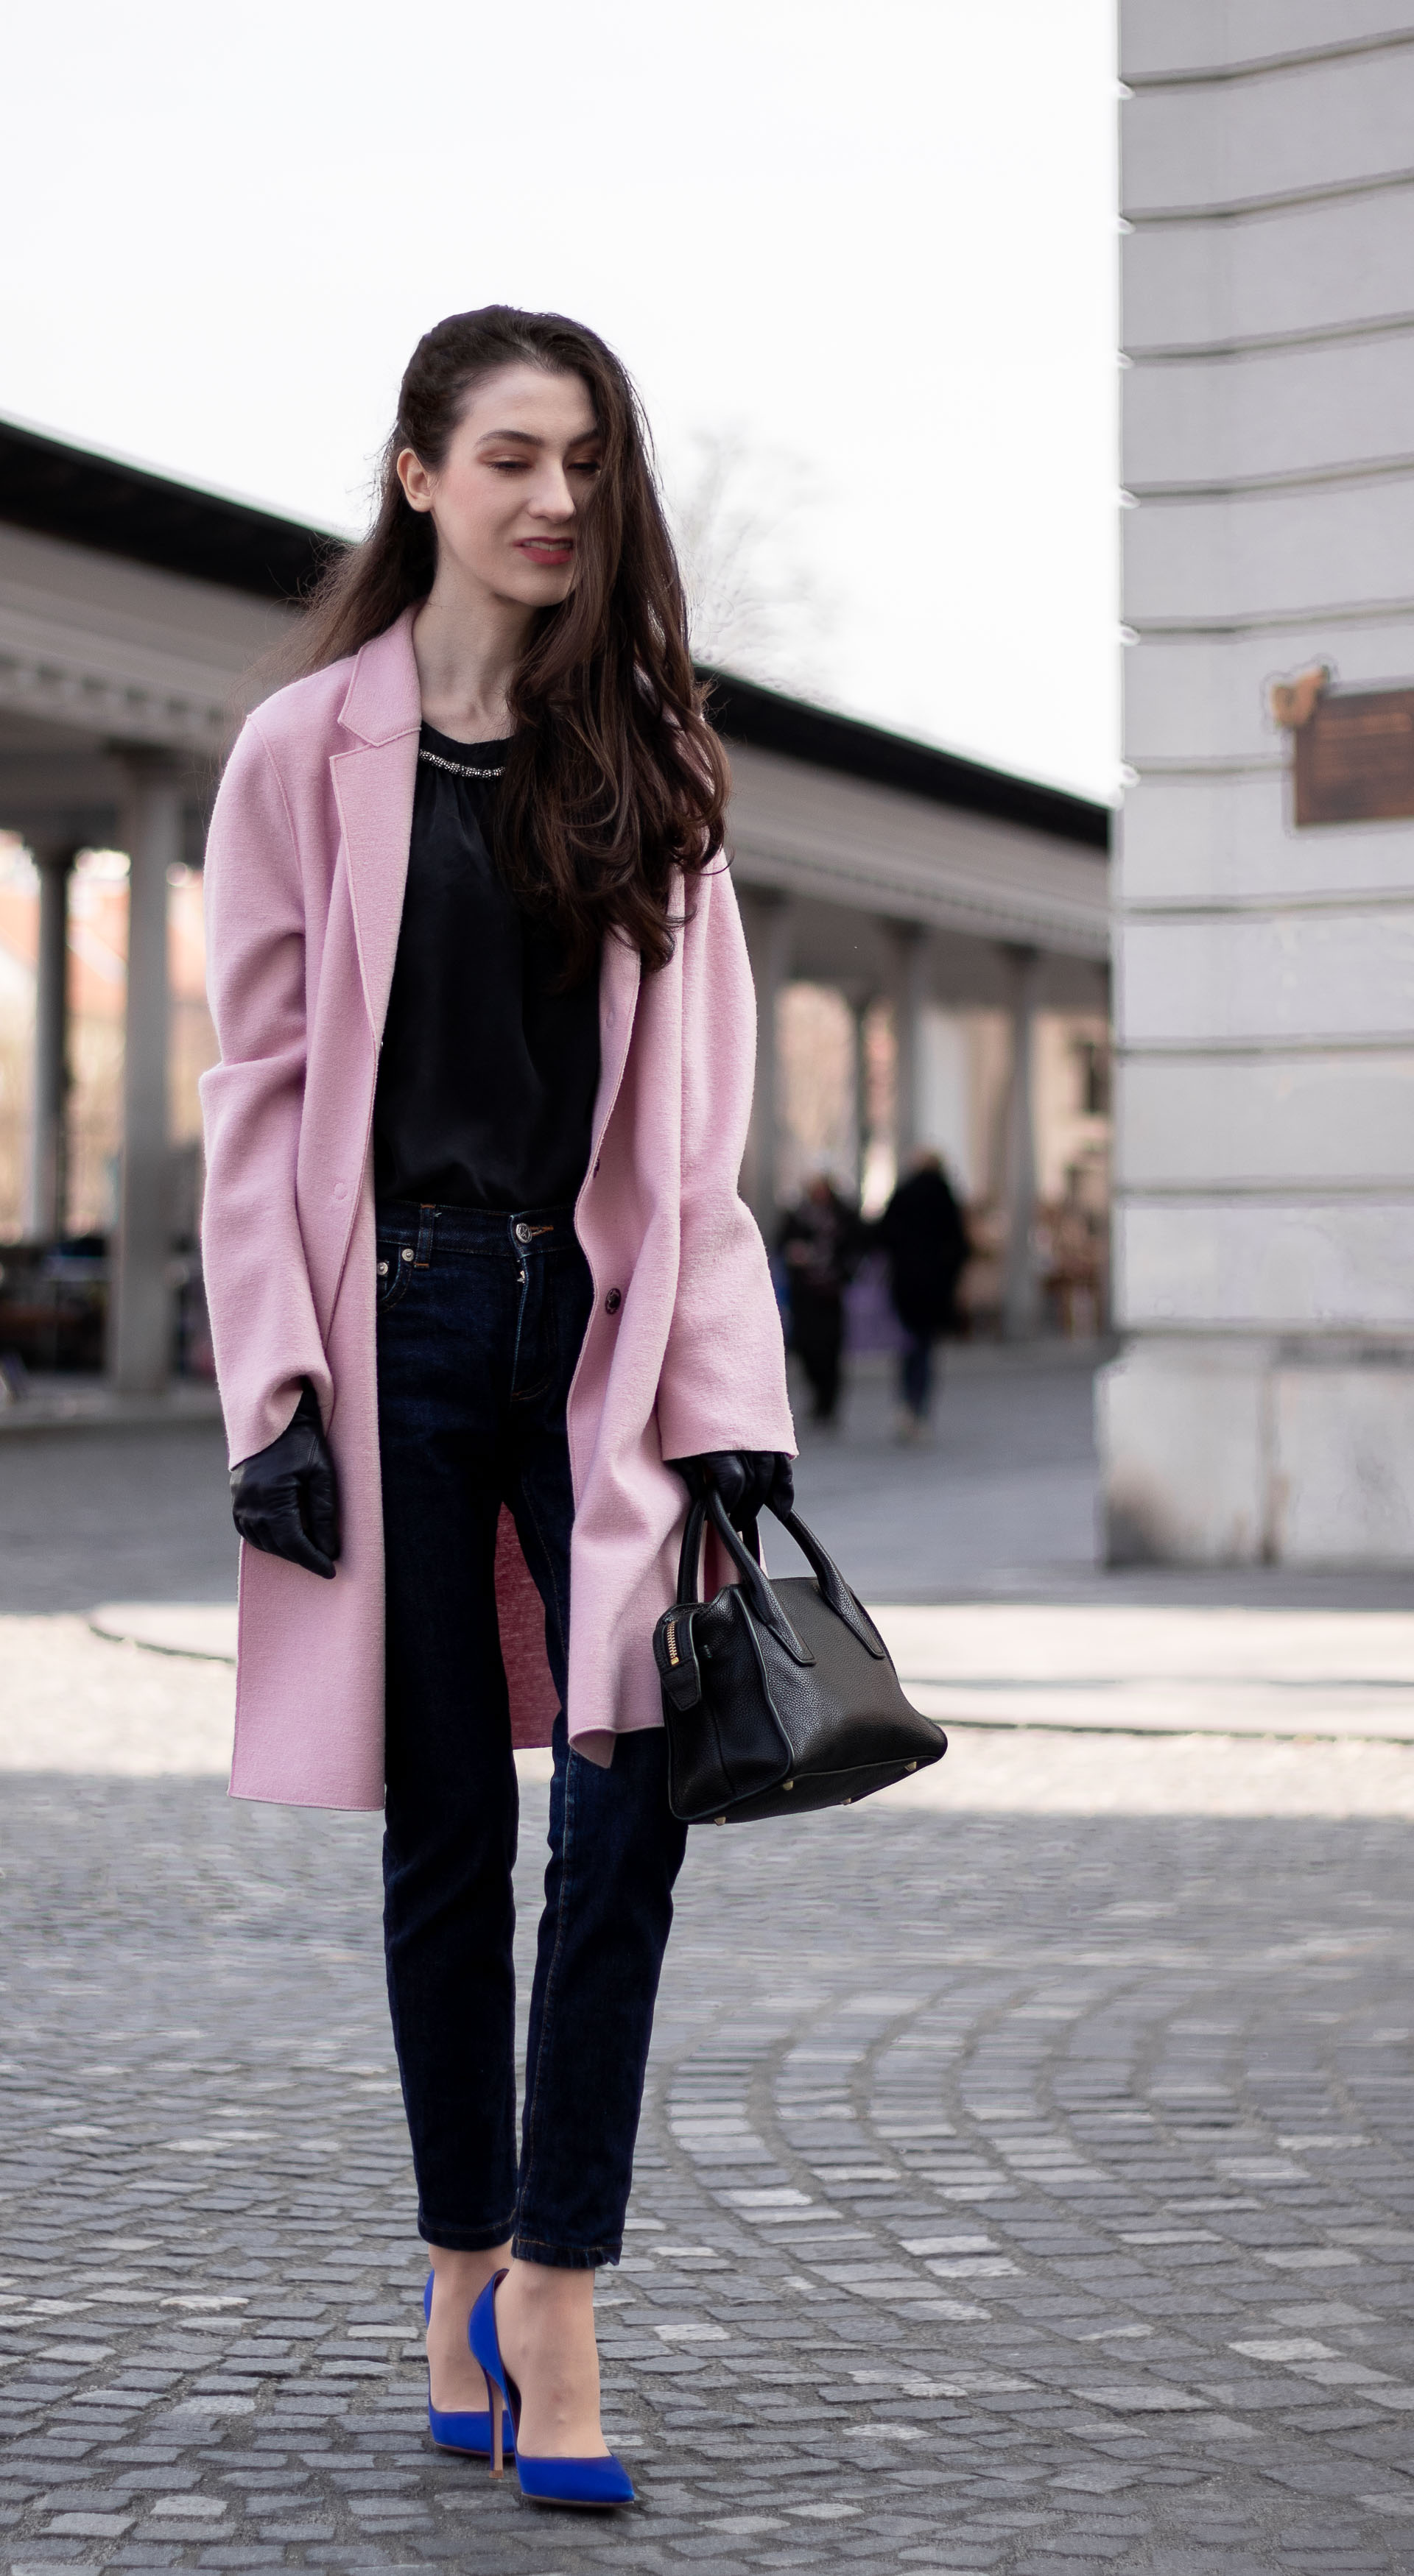 Must follow Fashion Blogger Veronika Lipar of Brunette from Wall Street wearing loose pink Harris Wharf London coat A.P.C. Paris dark blue denim jeans Gianvito Rossi blue court shoes black top handle bag Forzieri blue leather gloves pearl hairpin standing on the street